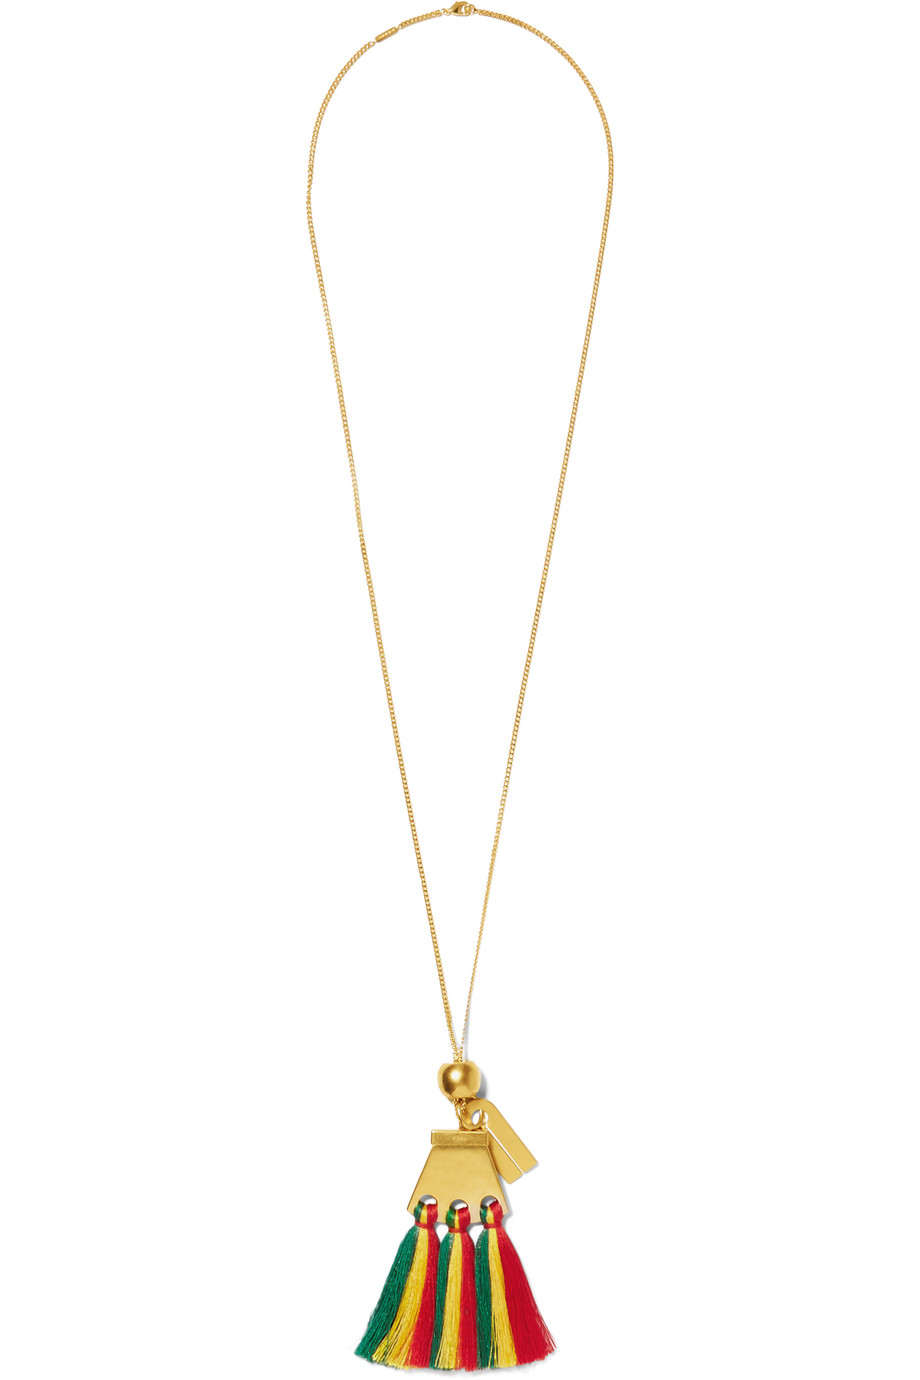 Chloé Gold-Plated Tasseled Necklace, Red/Gold, Women's